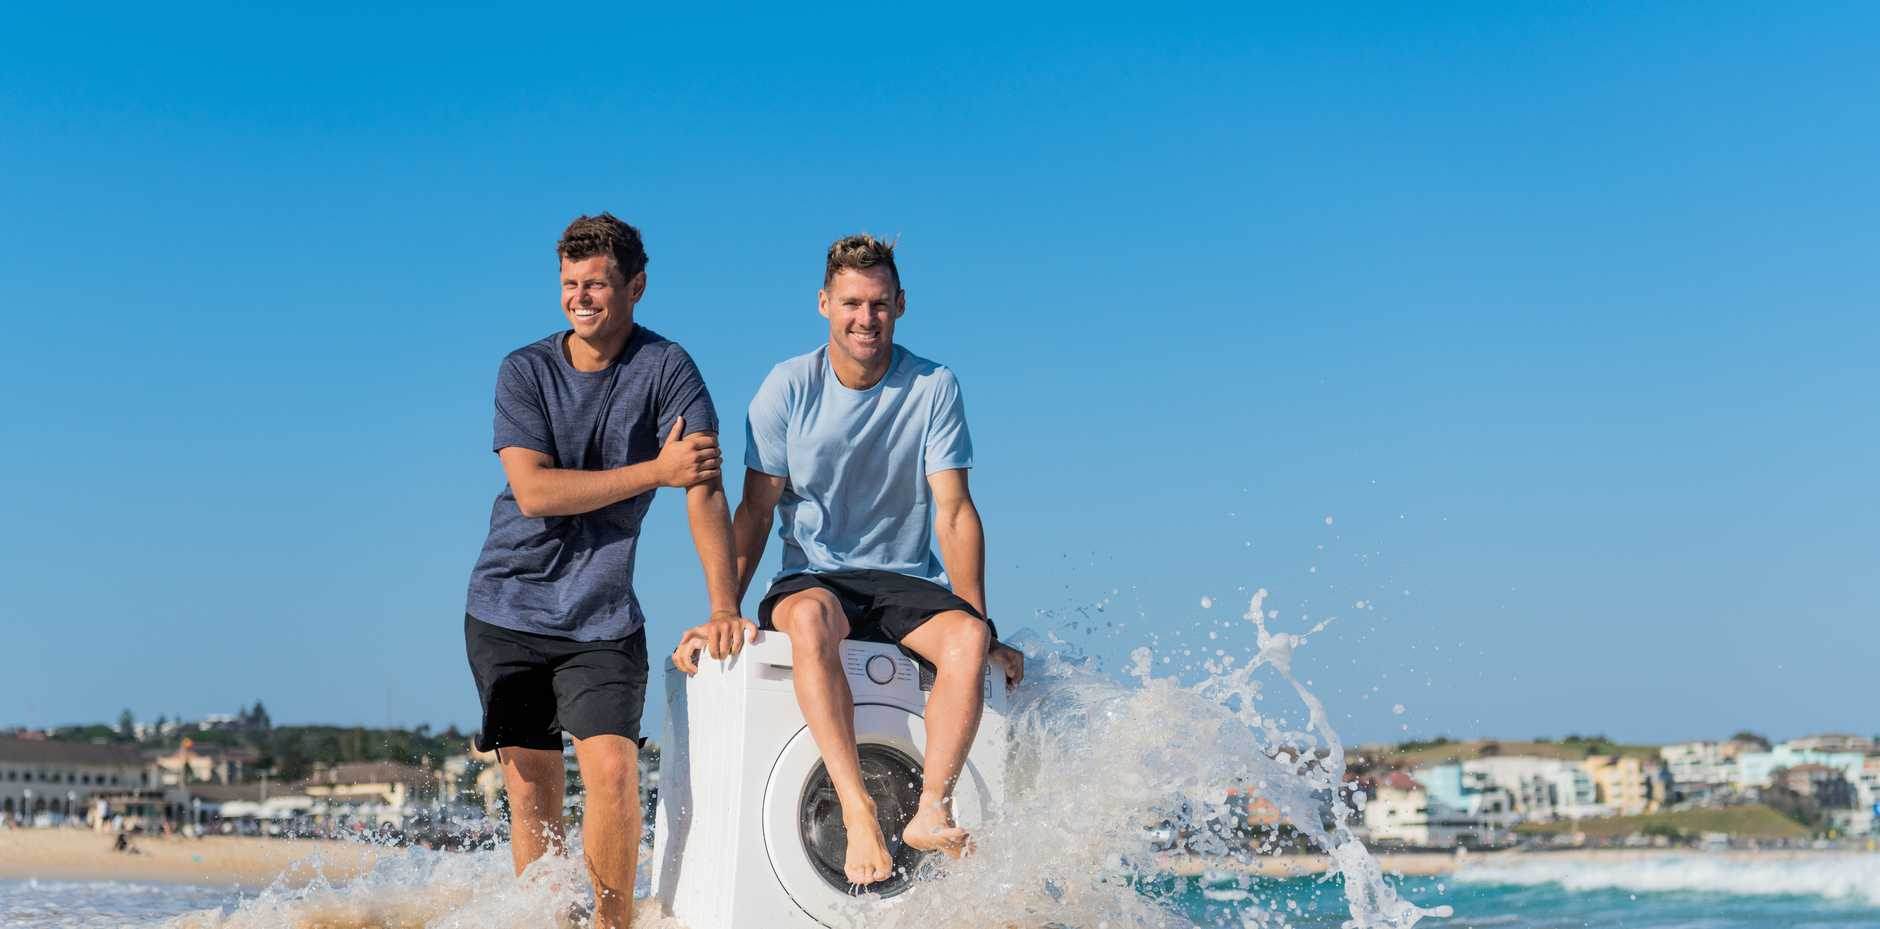 Bondi Lifeguards, Harrison Reid and Clint Kimmins are teaming up with scientists and fashion designers to tackle the vast, microscopic problem.